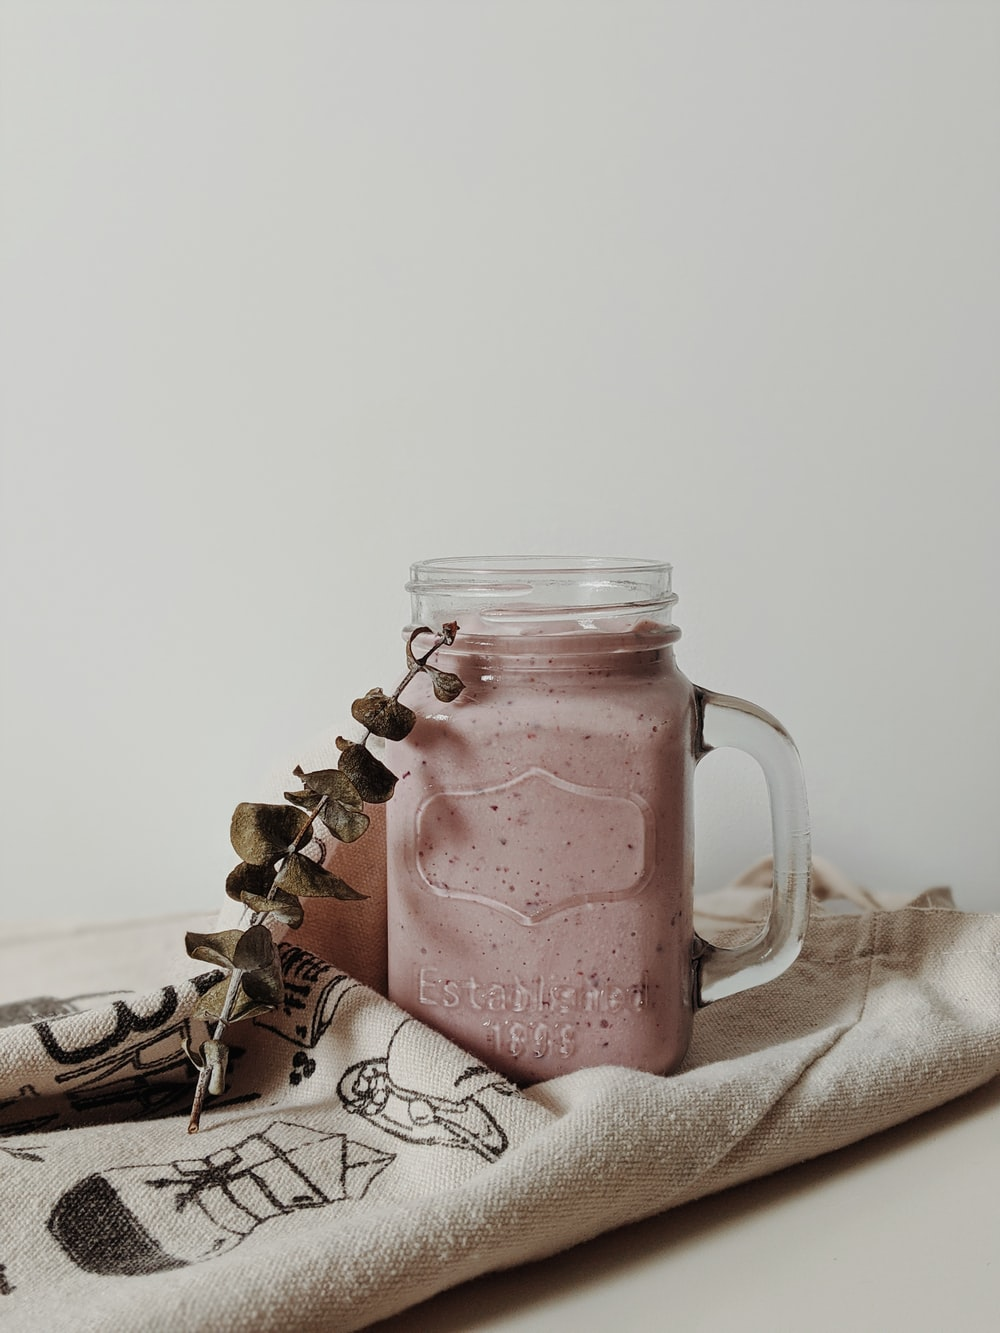 clear glass jar with pink liquid inside